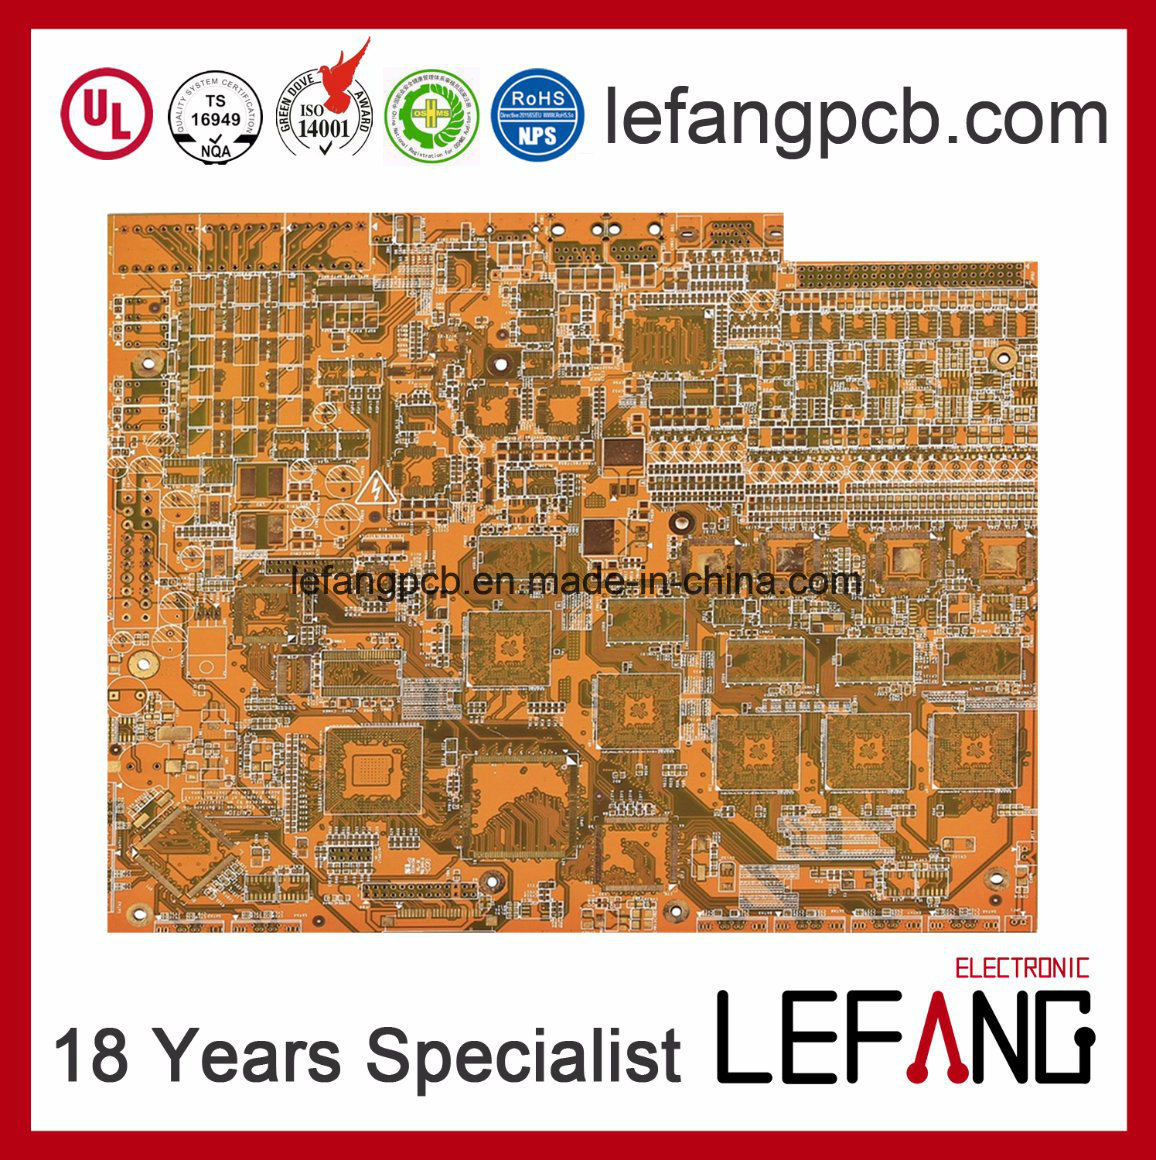 China Multilayer Enig Gold Industrial Control Motherboard Pcb Wiring Board Electronics Circuit Main